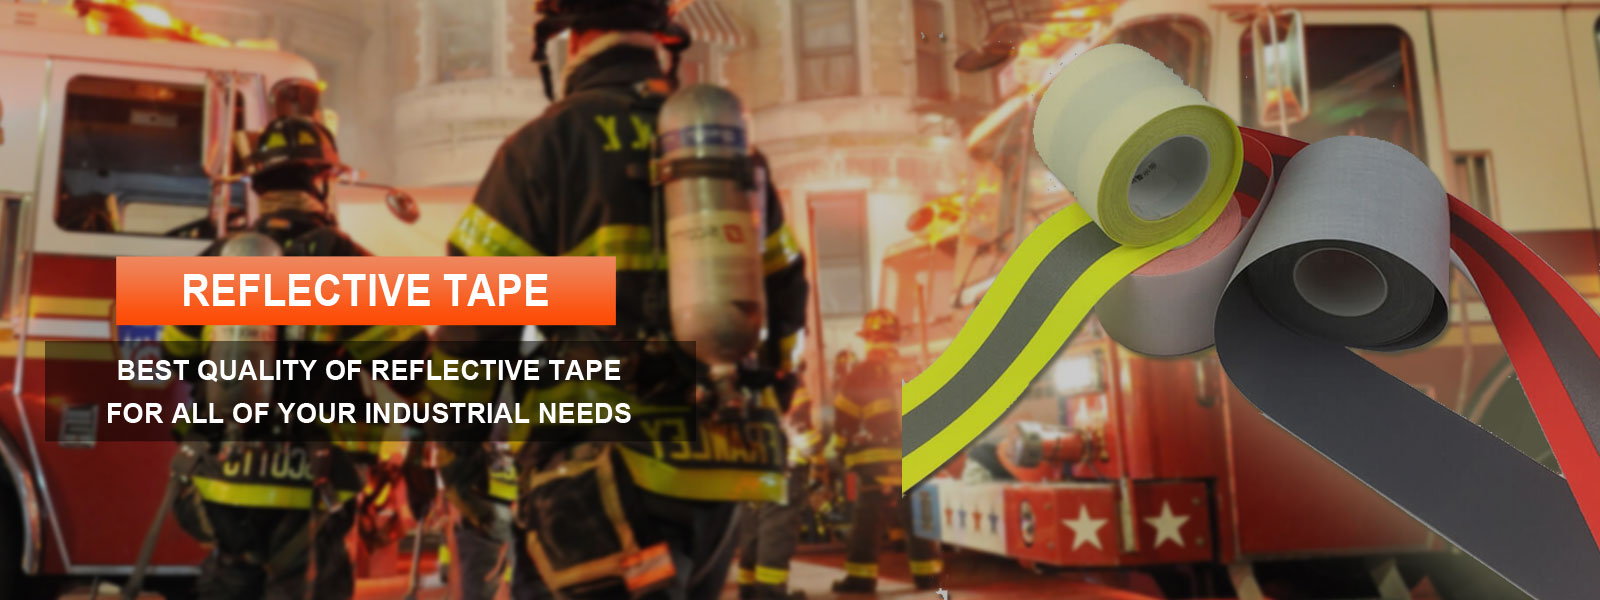 Reflective Tape Manufacturers in Portugal